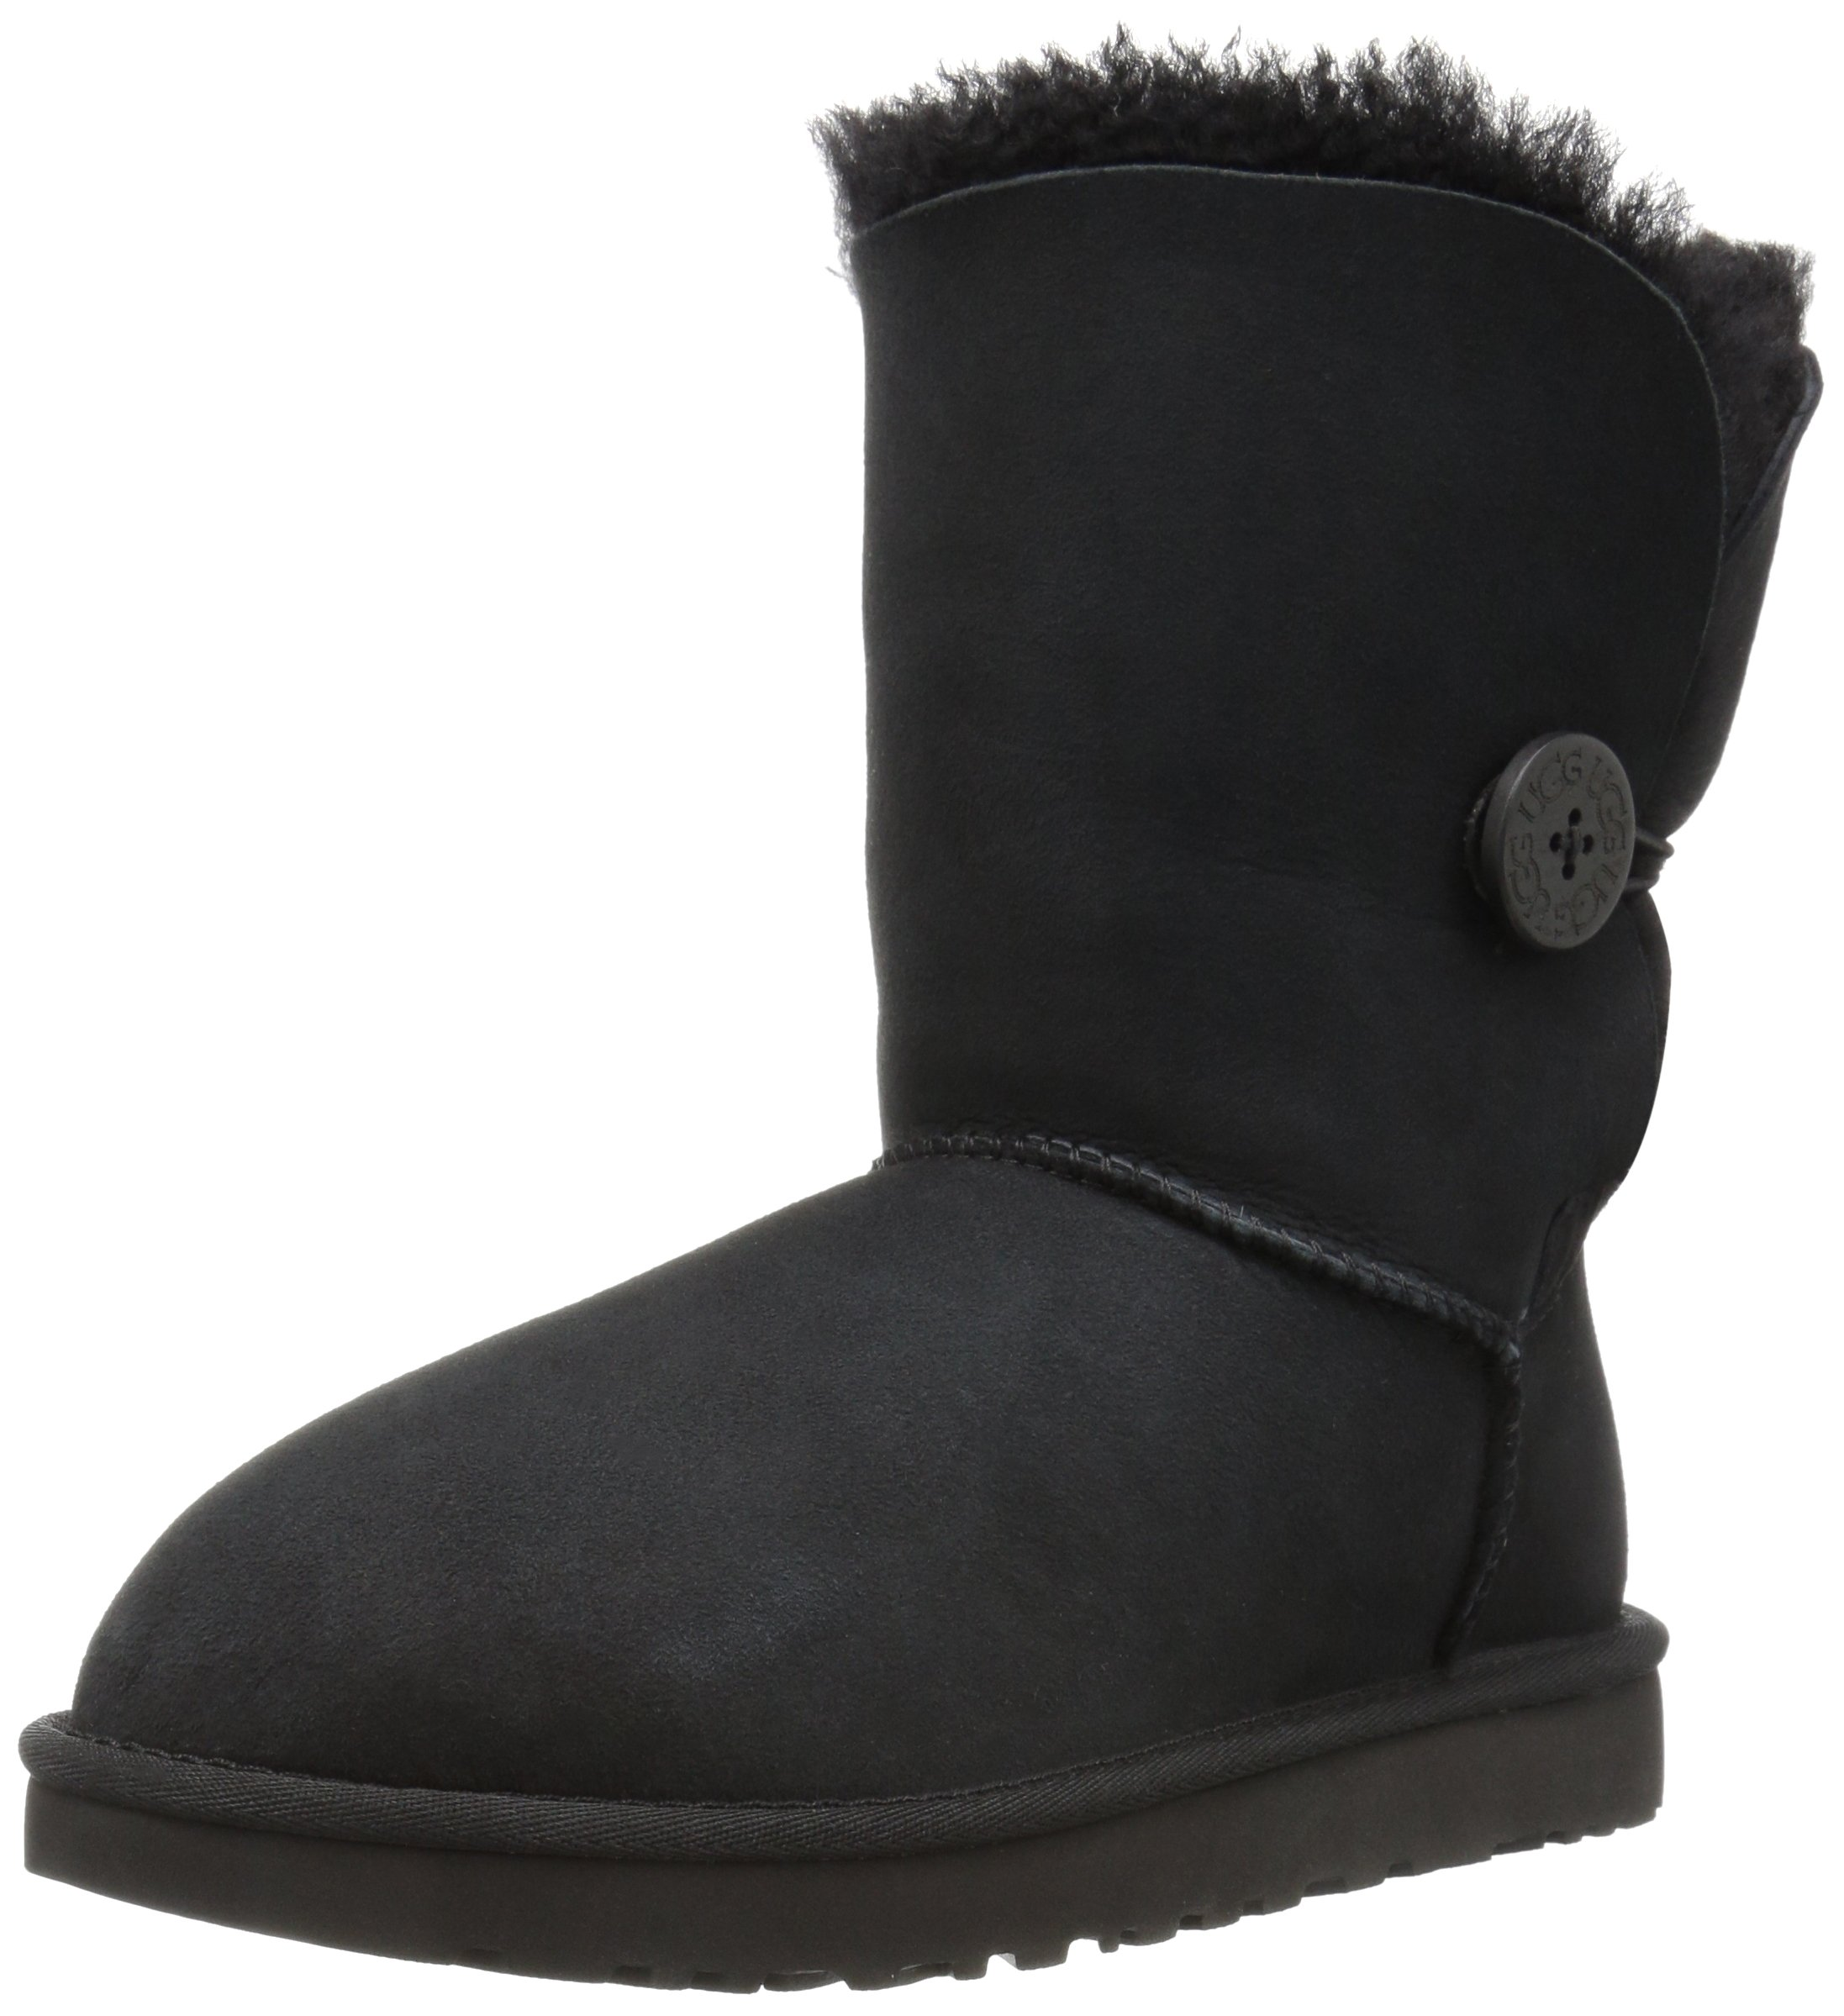 UGG Women's Bailey Button II Winter Boot, Black, 5 B US